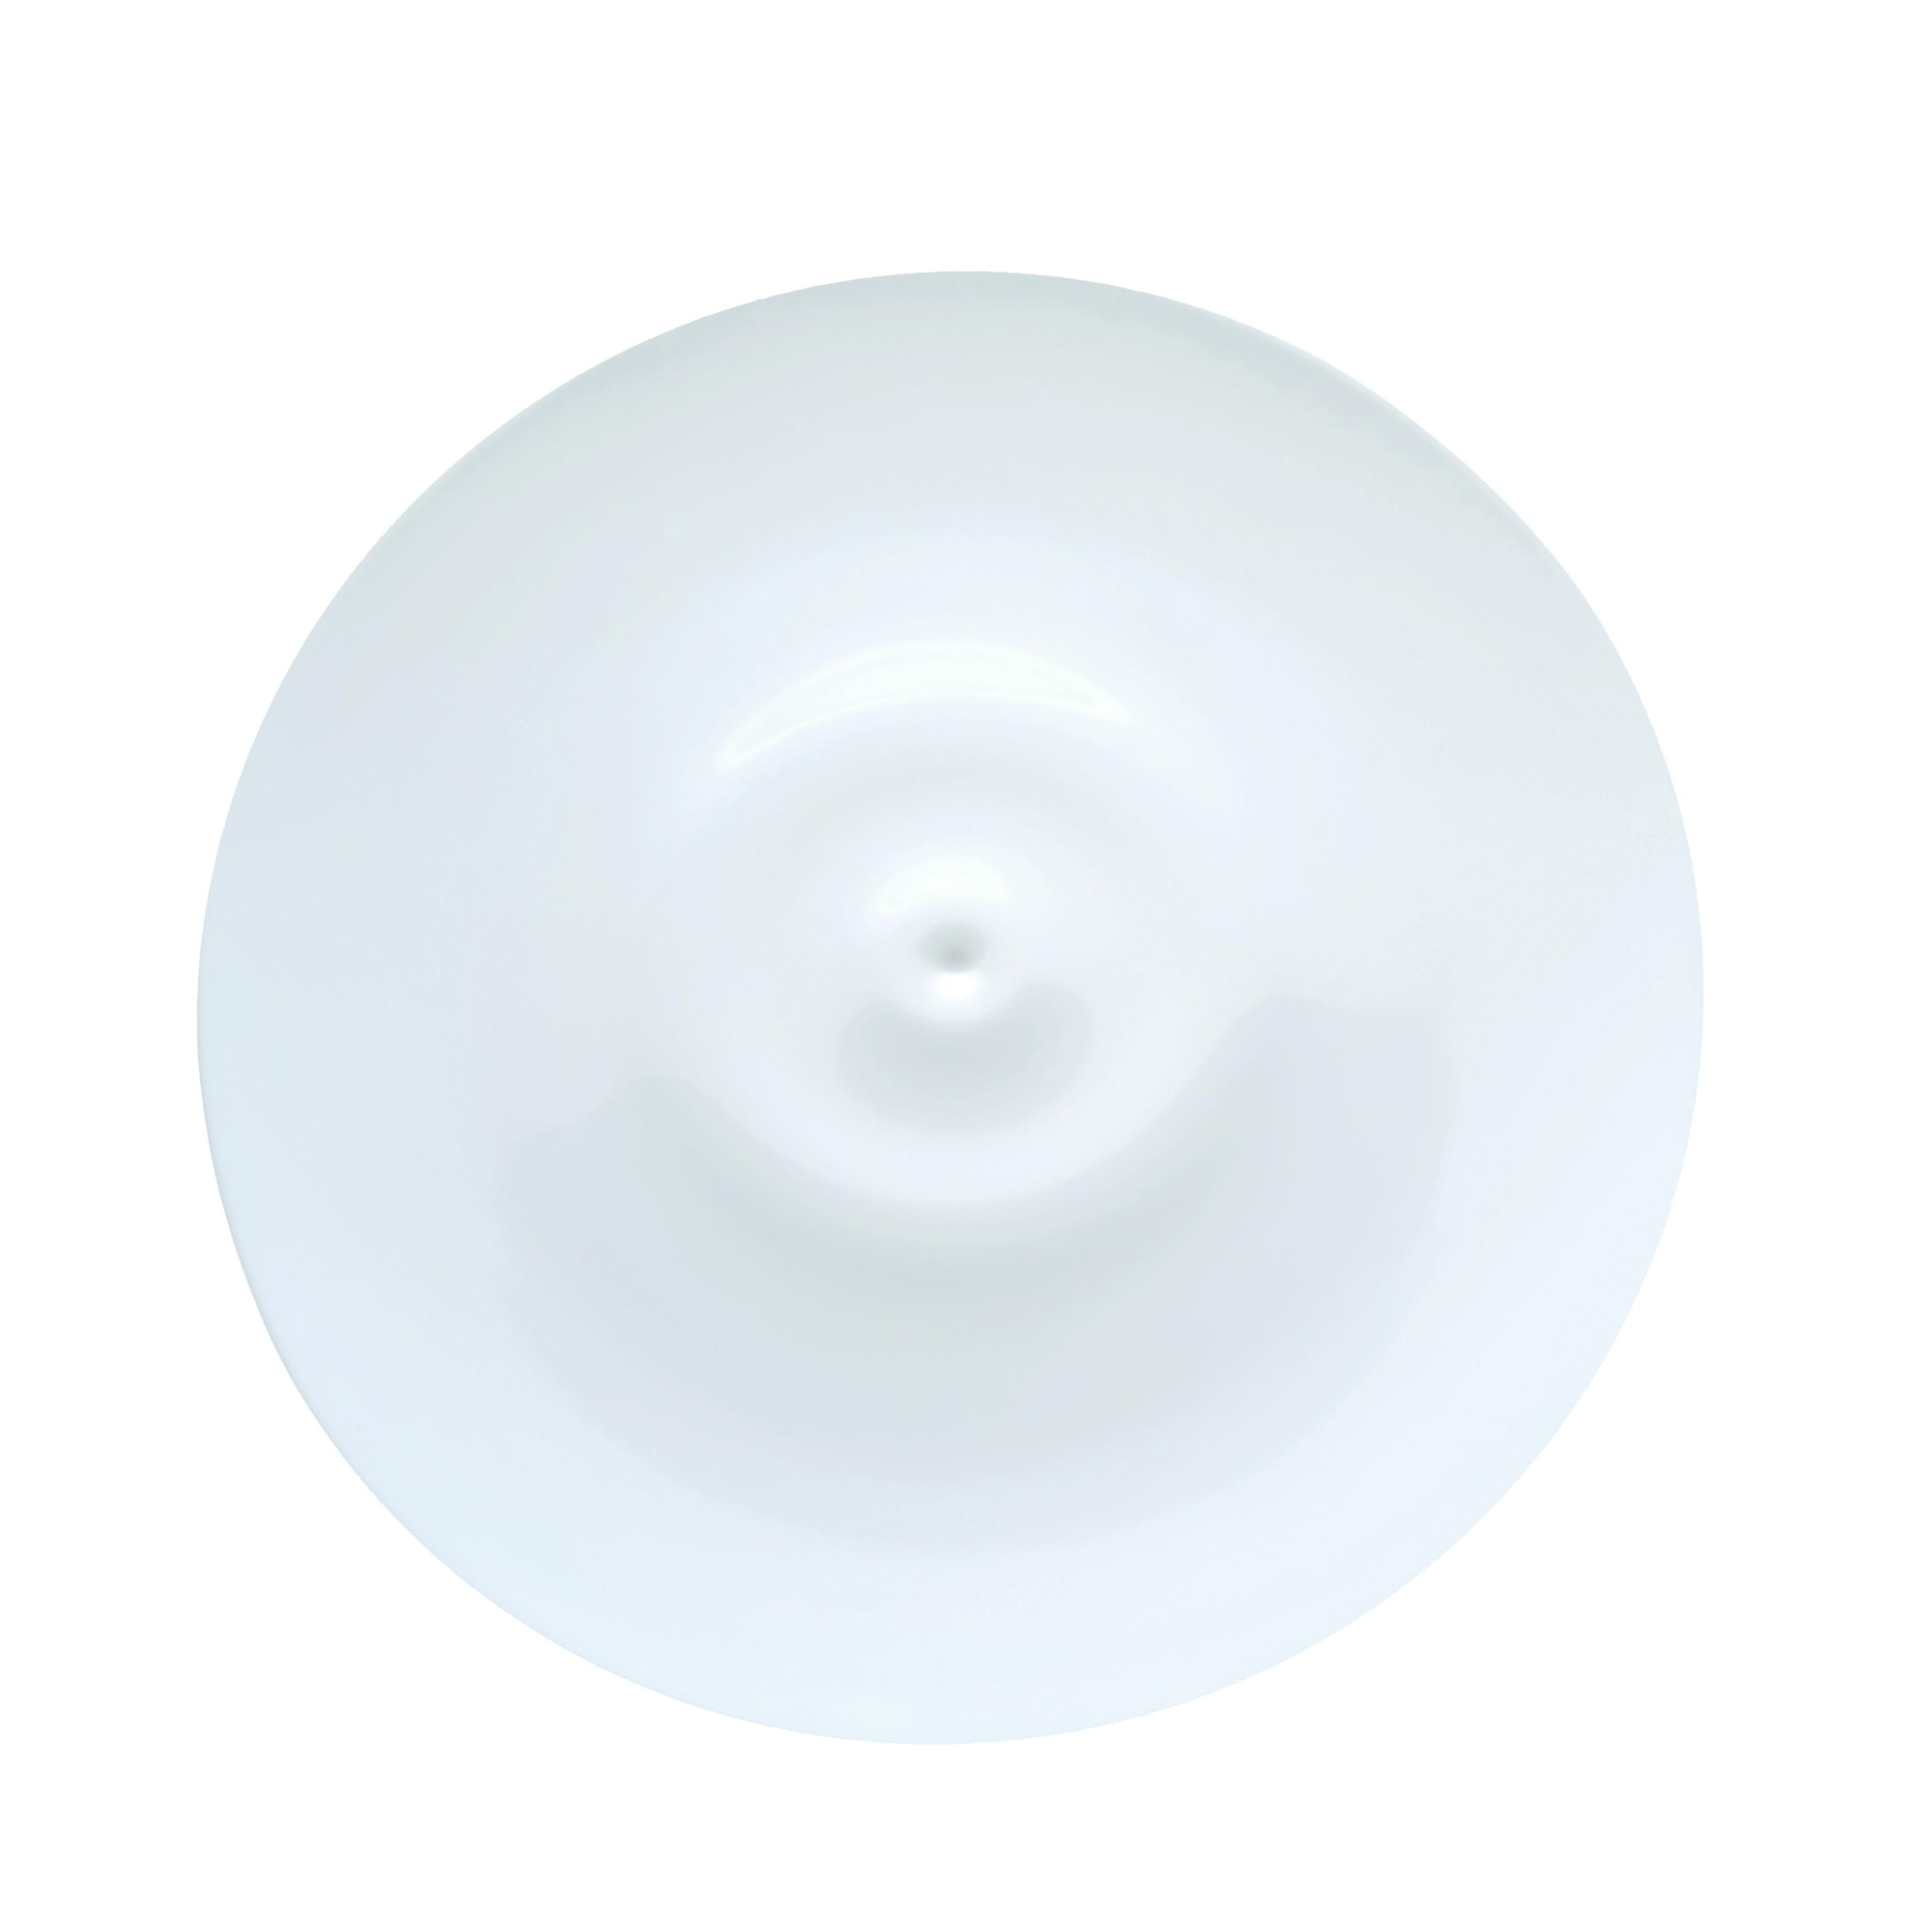 Bernardaud Bulle Dinner Plate, White